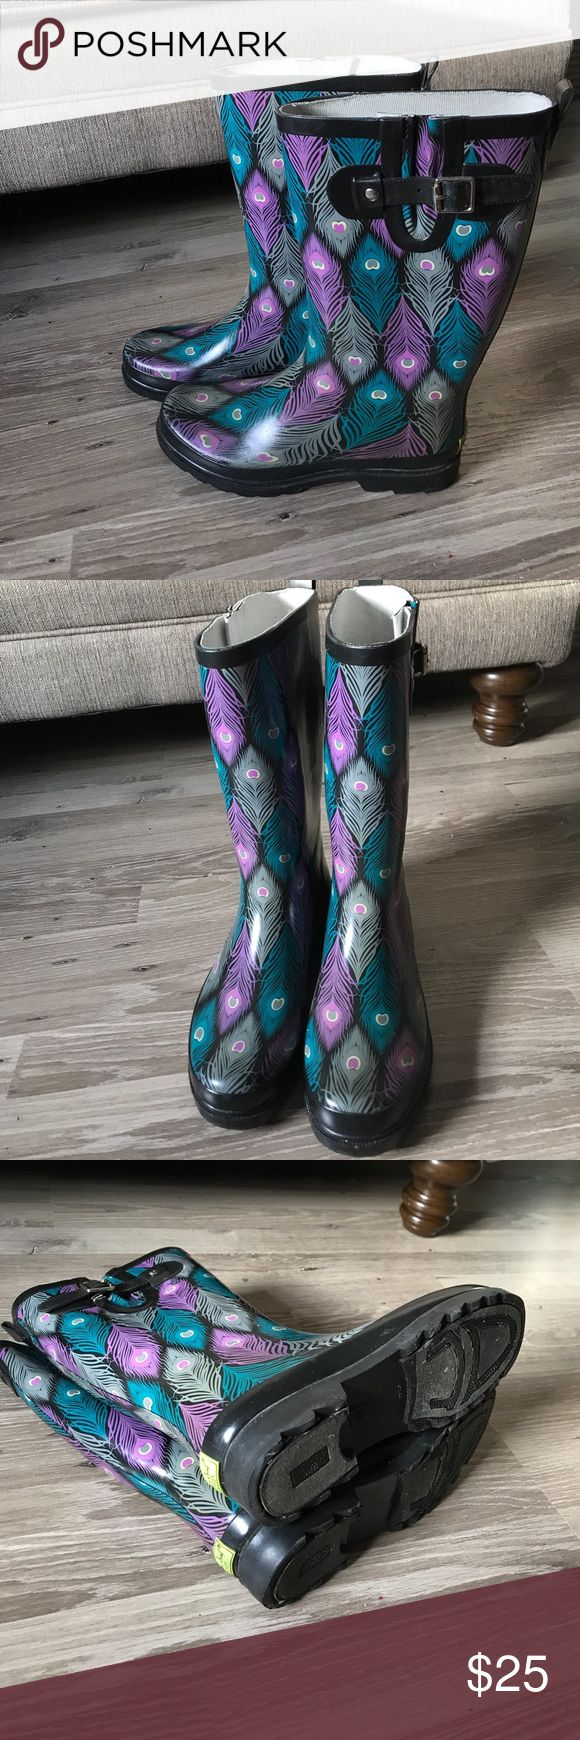 Western Chief Rain Boots Womens Size 8 In great condition! Check out my other listings, bundle and save! Western Chief Shoes Winter & Rain Boots